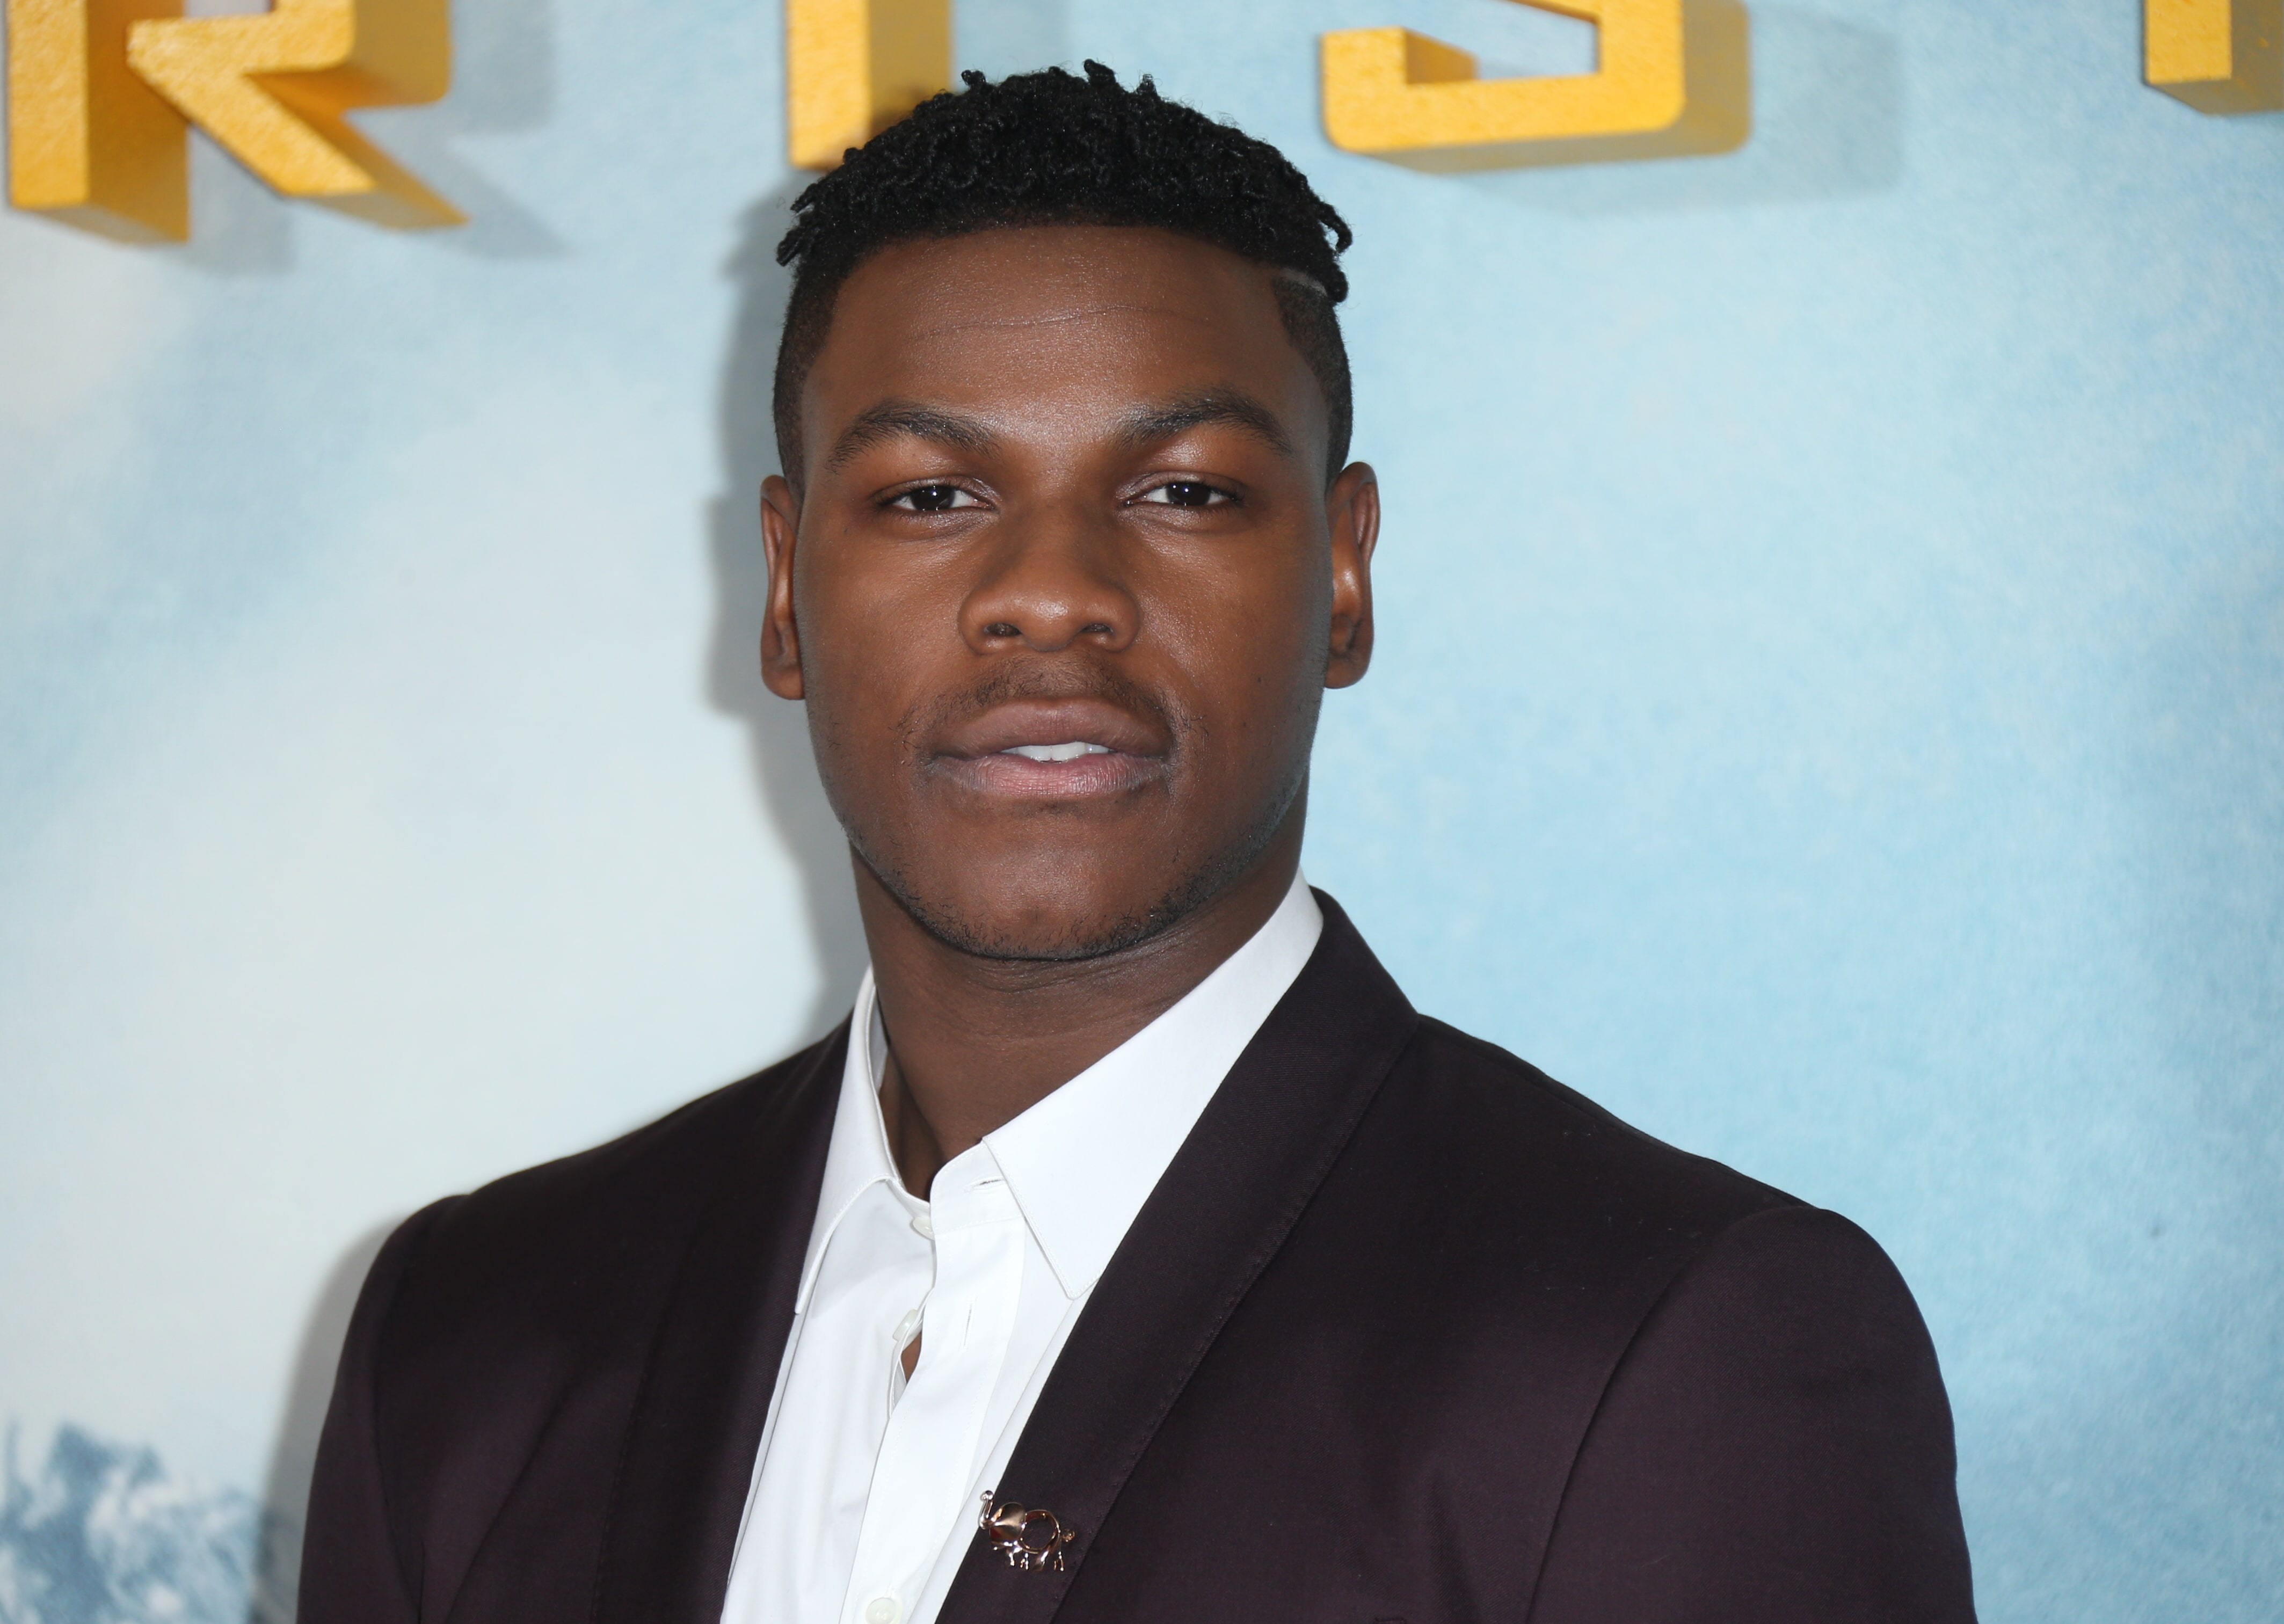 If you too love the Star Wars actor, here are 12 things you should definitely know about the amazing John Boyega! (Photo: WENN)